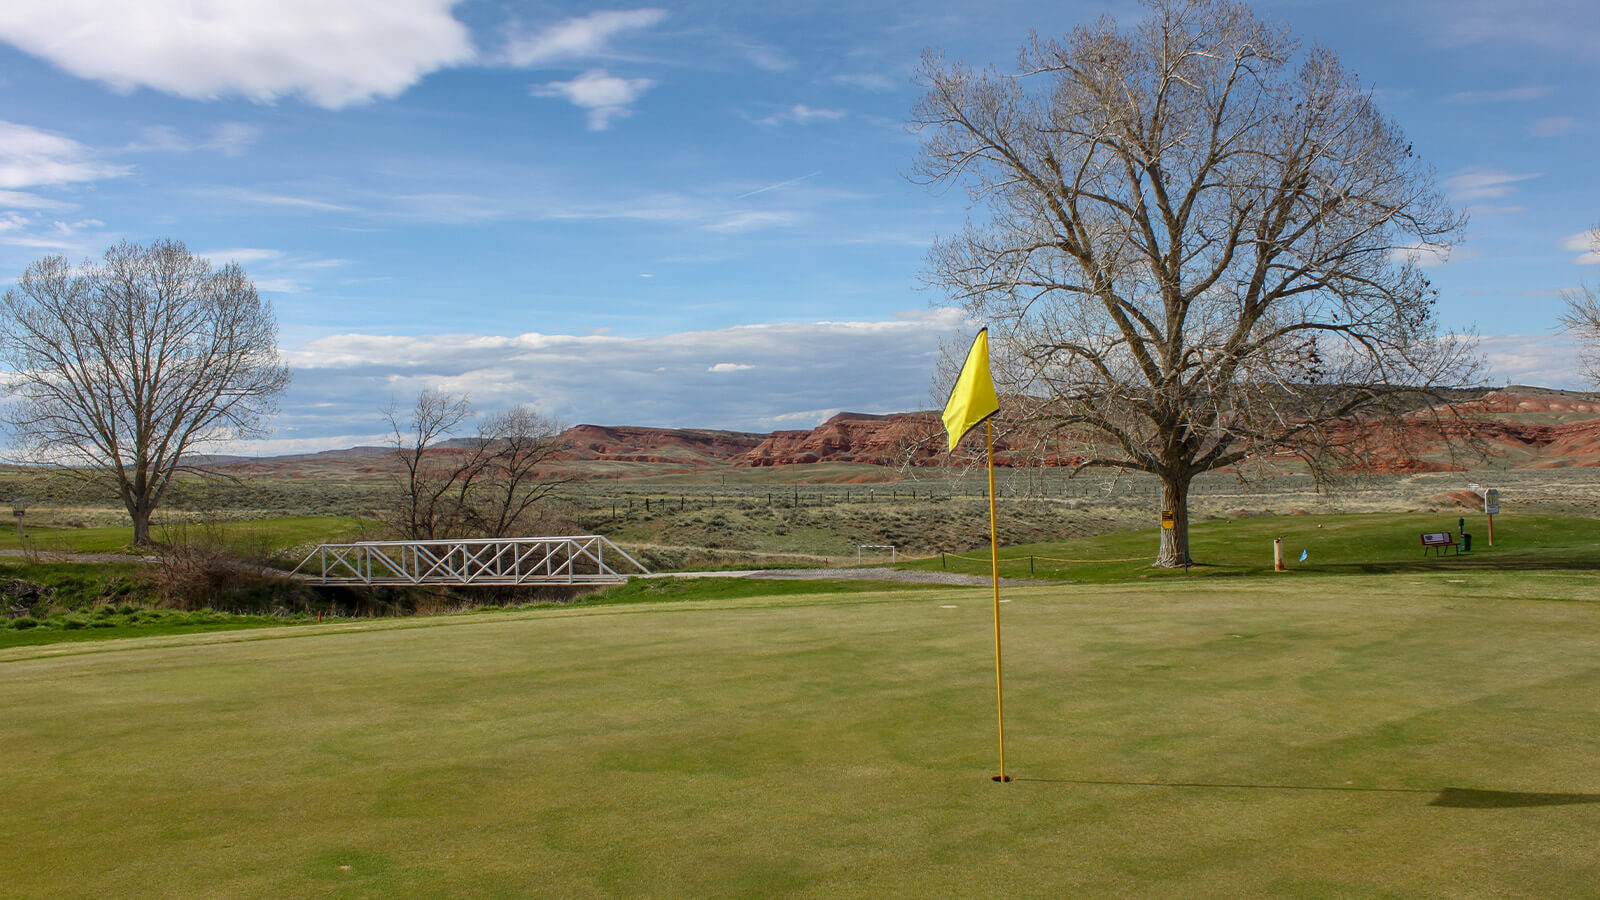 Putting green against mountain backdrop